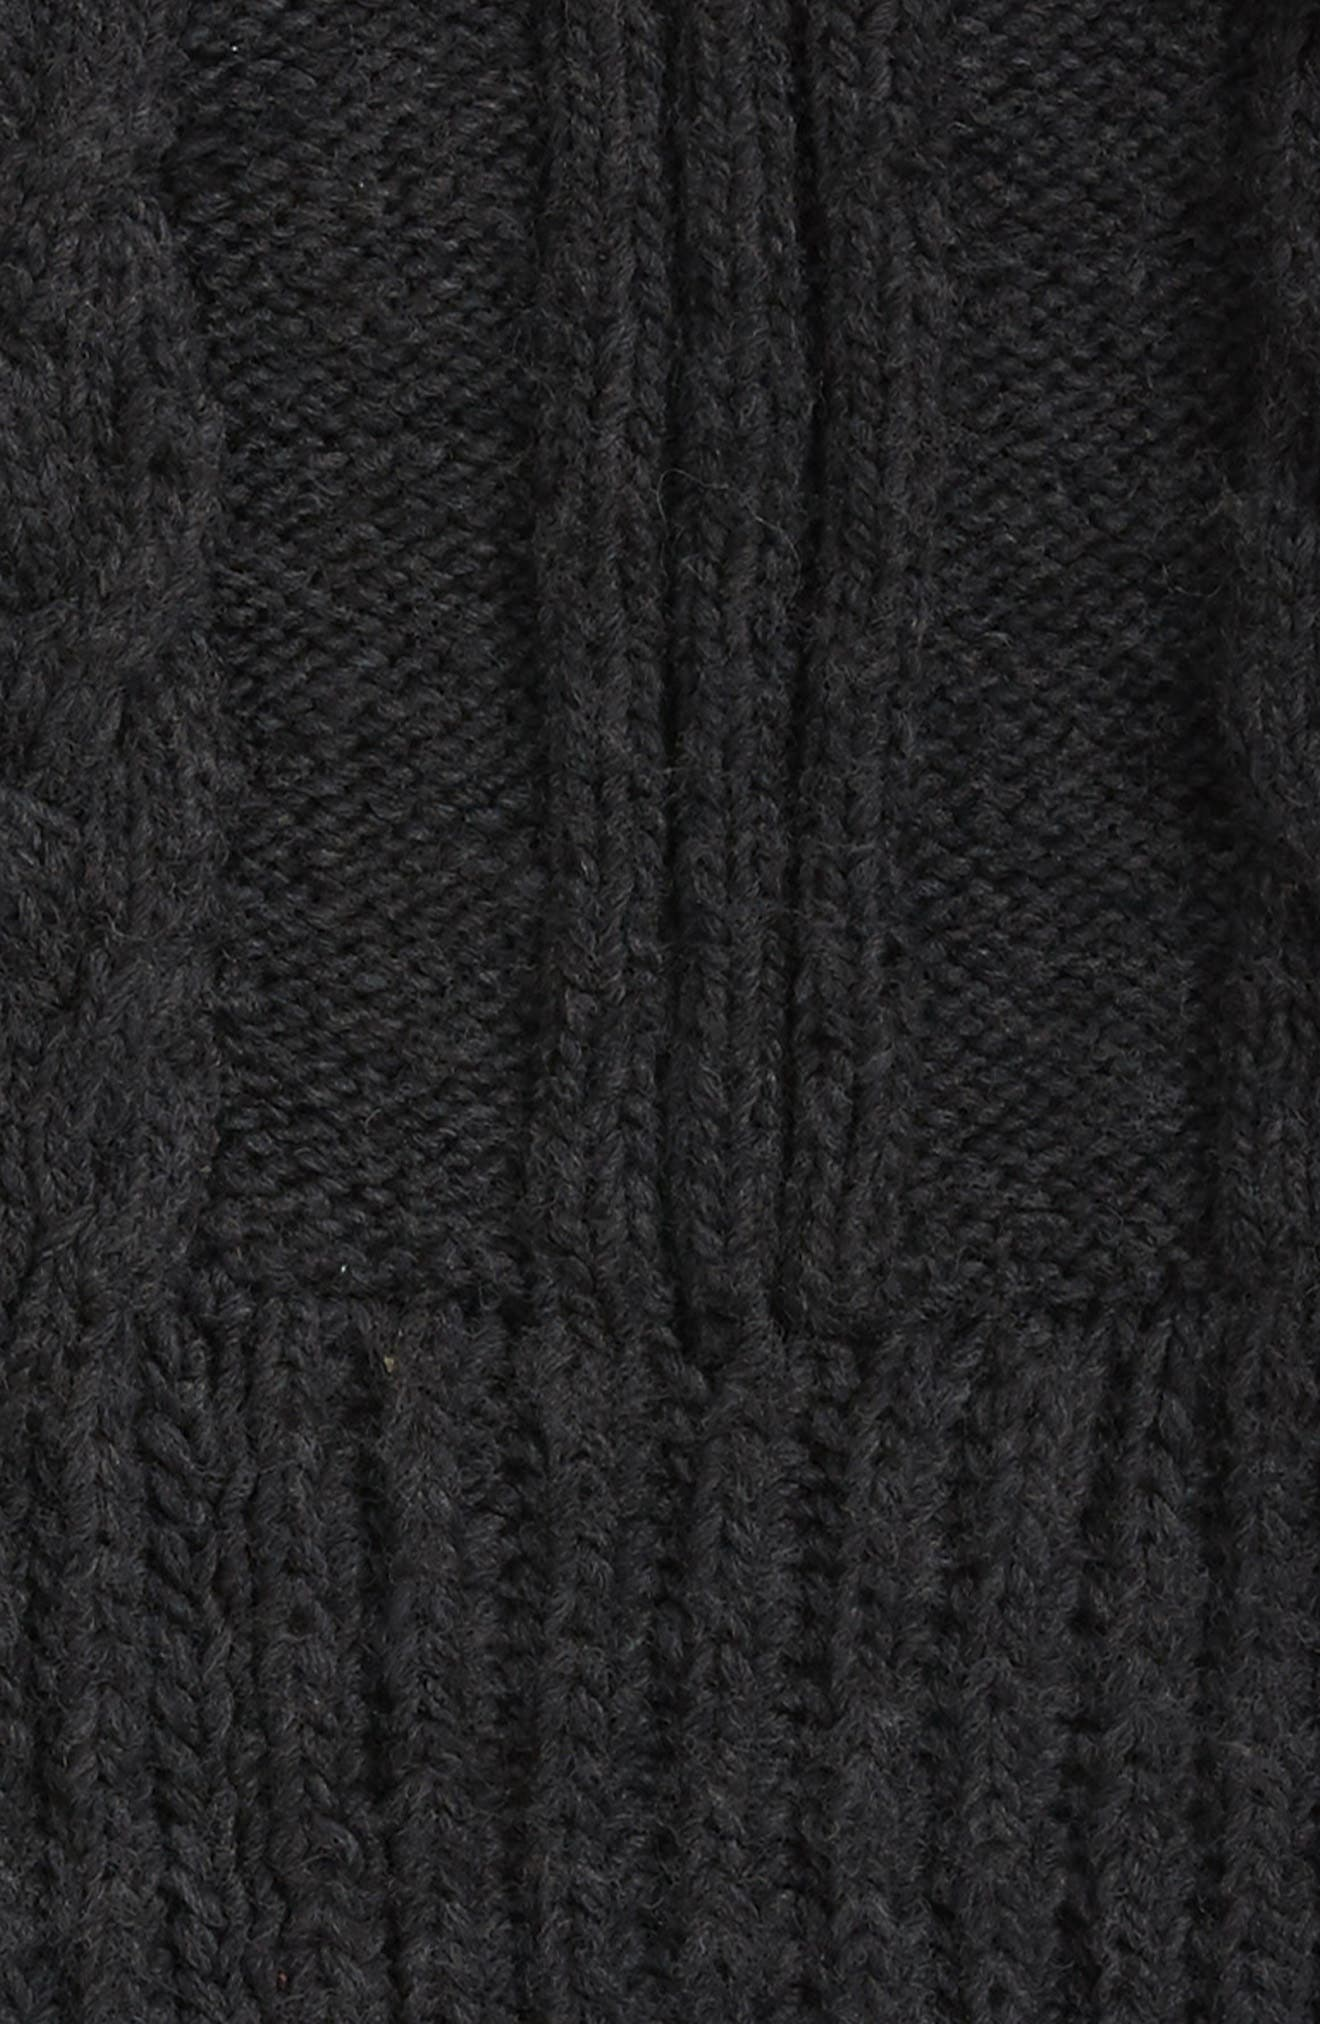 Oversize Cable Knit Wool Infinity Scarf,                             Alternate thumbnail 12, color,